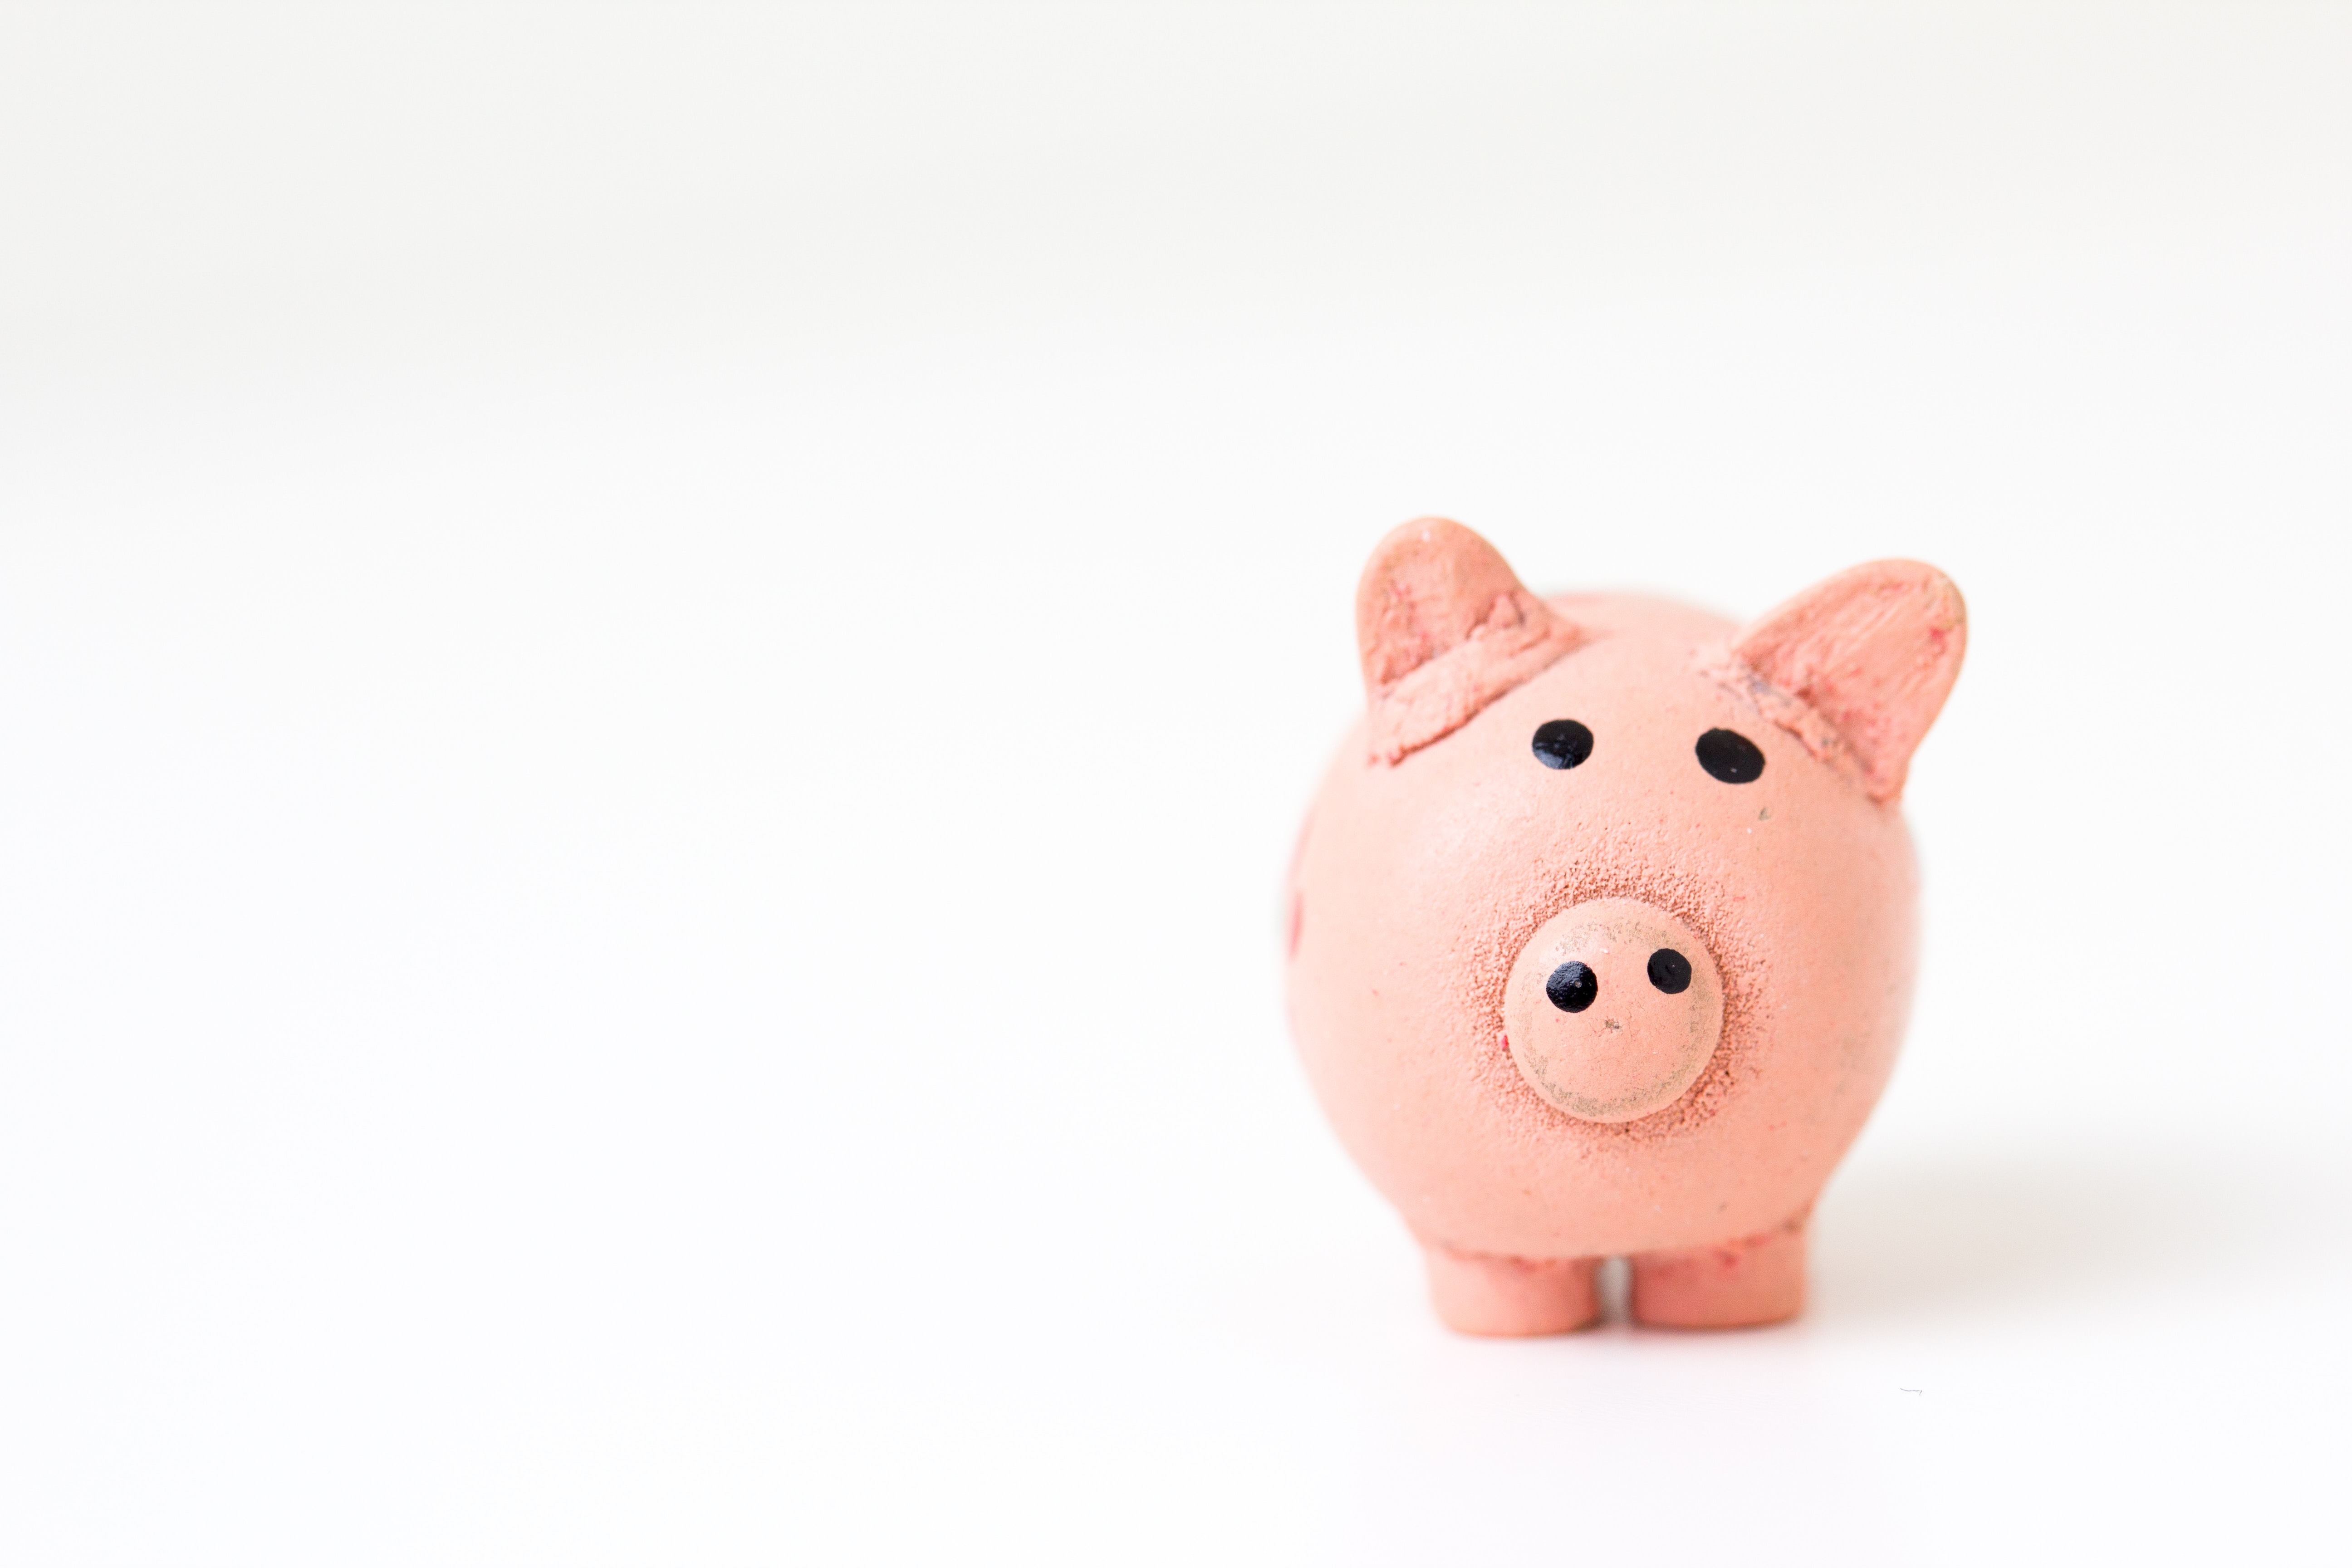 A small pink piggy bank sits off center against a white background.